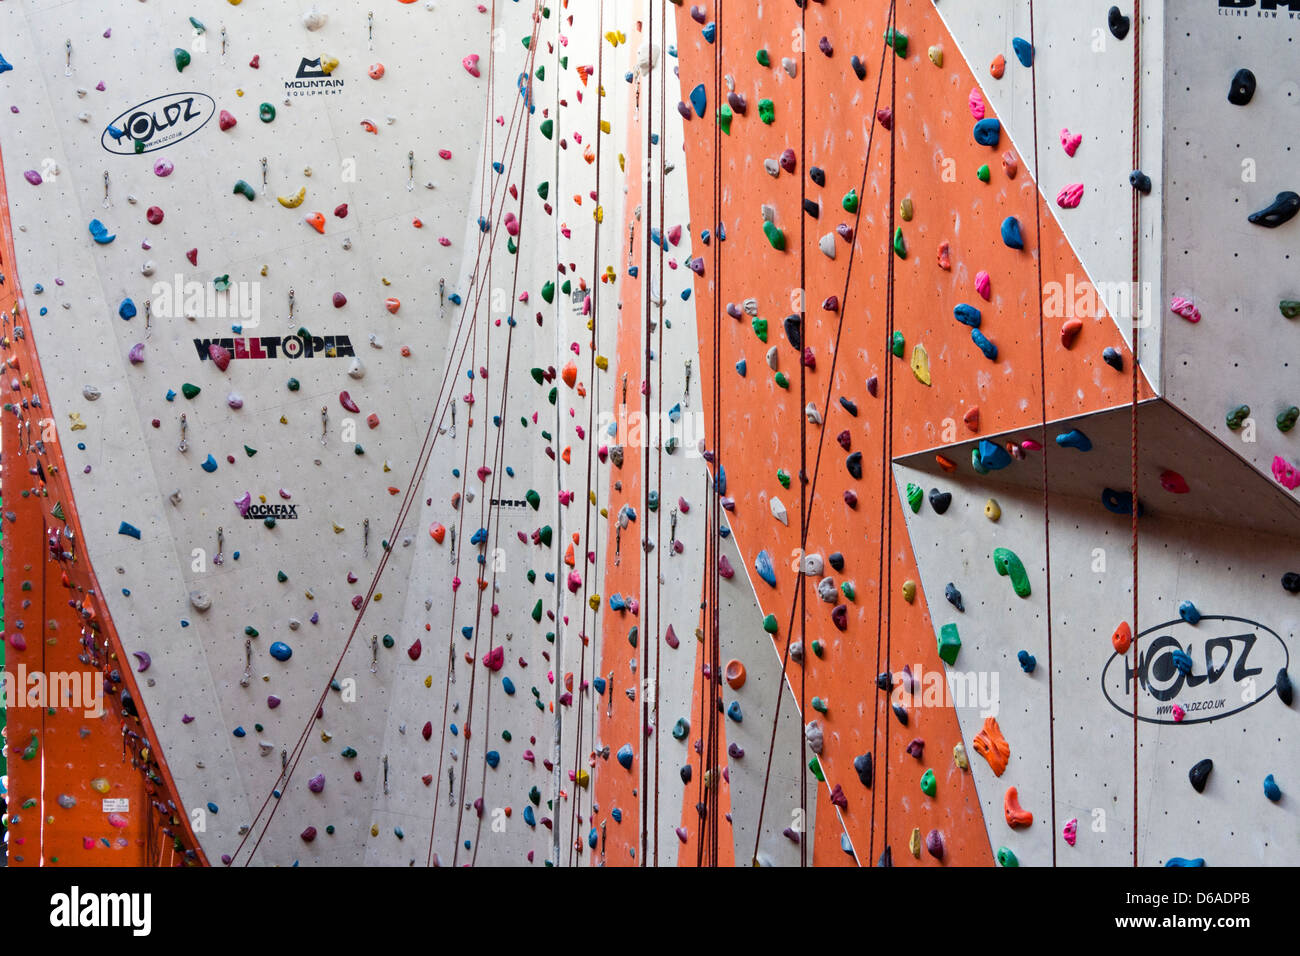 Climbing holds and ropes on an indoor climbing wall. - Stock Image